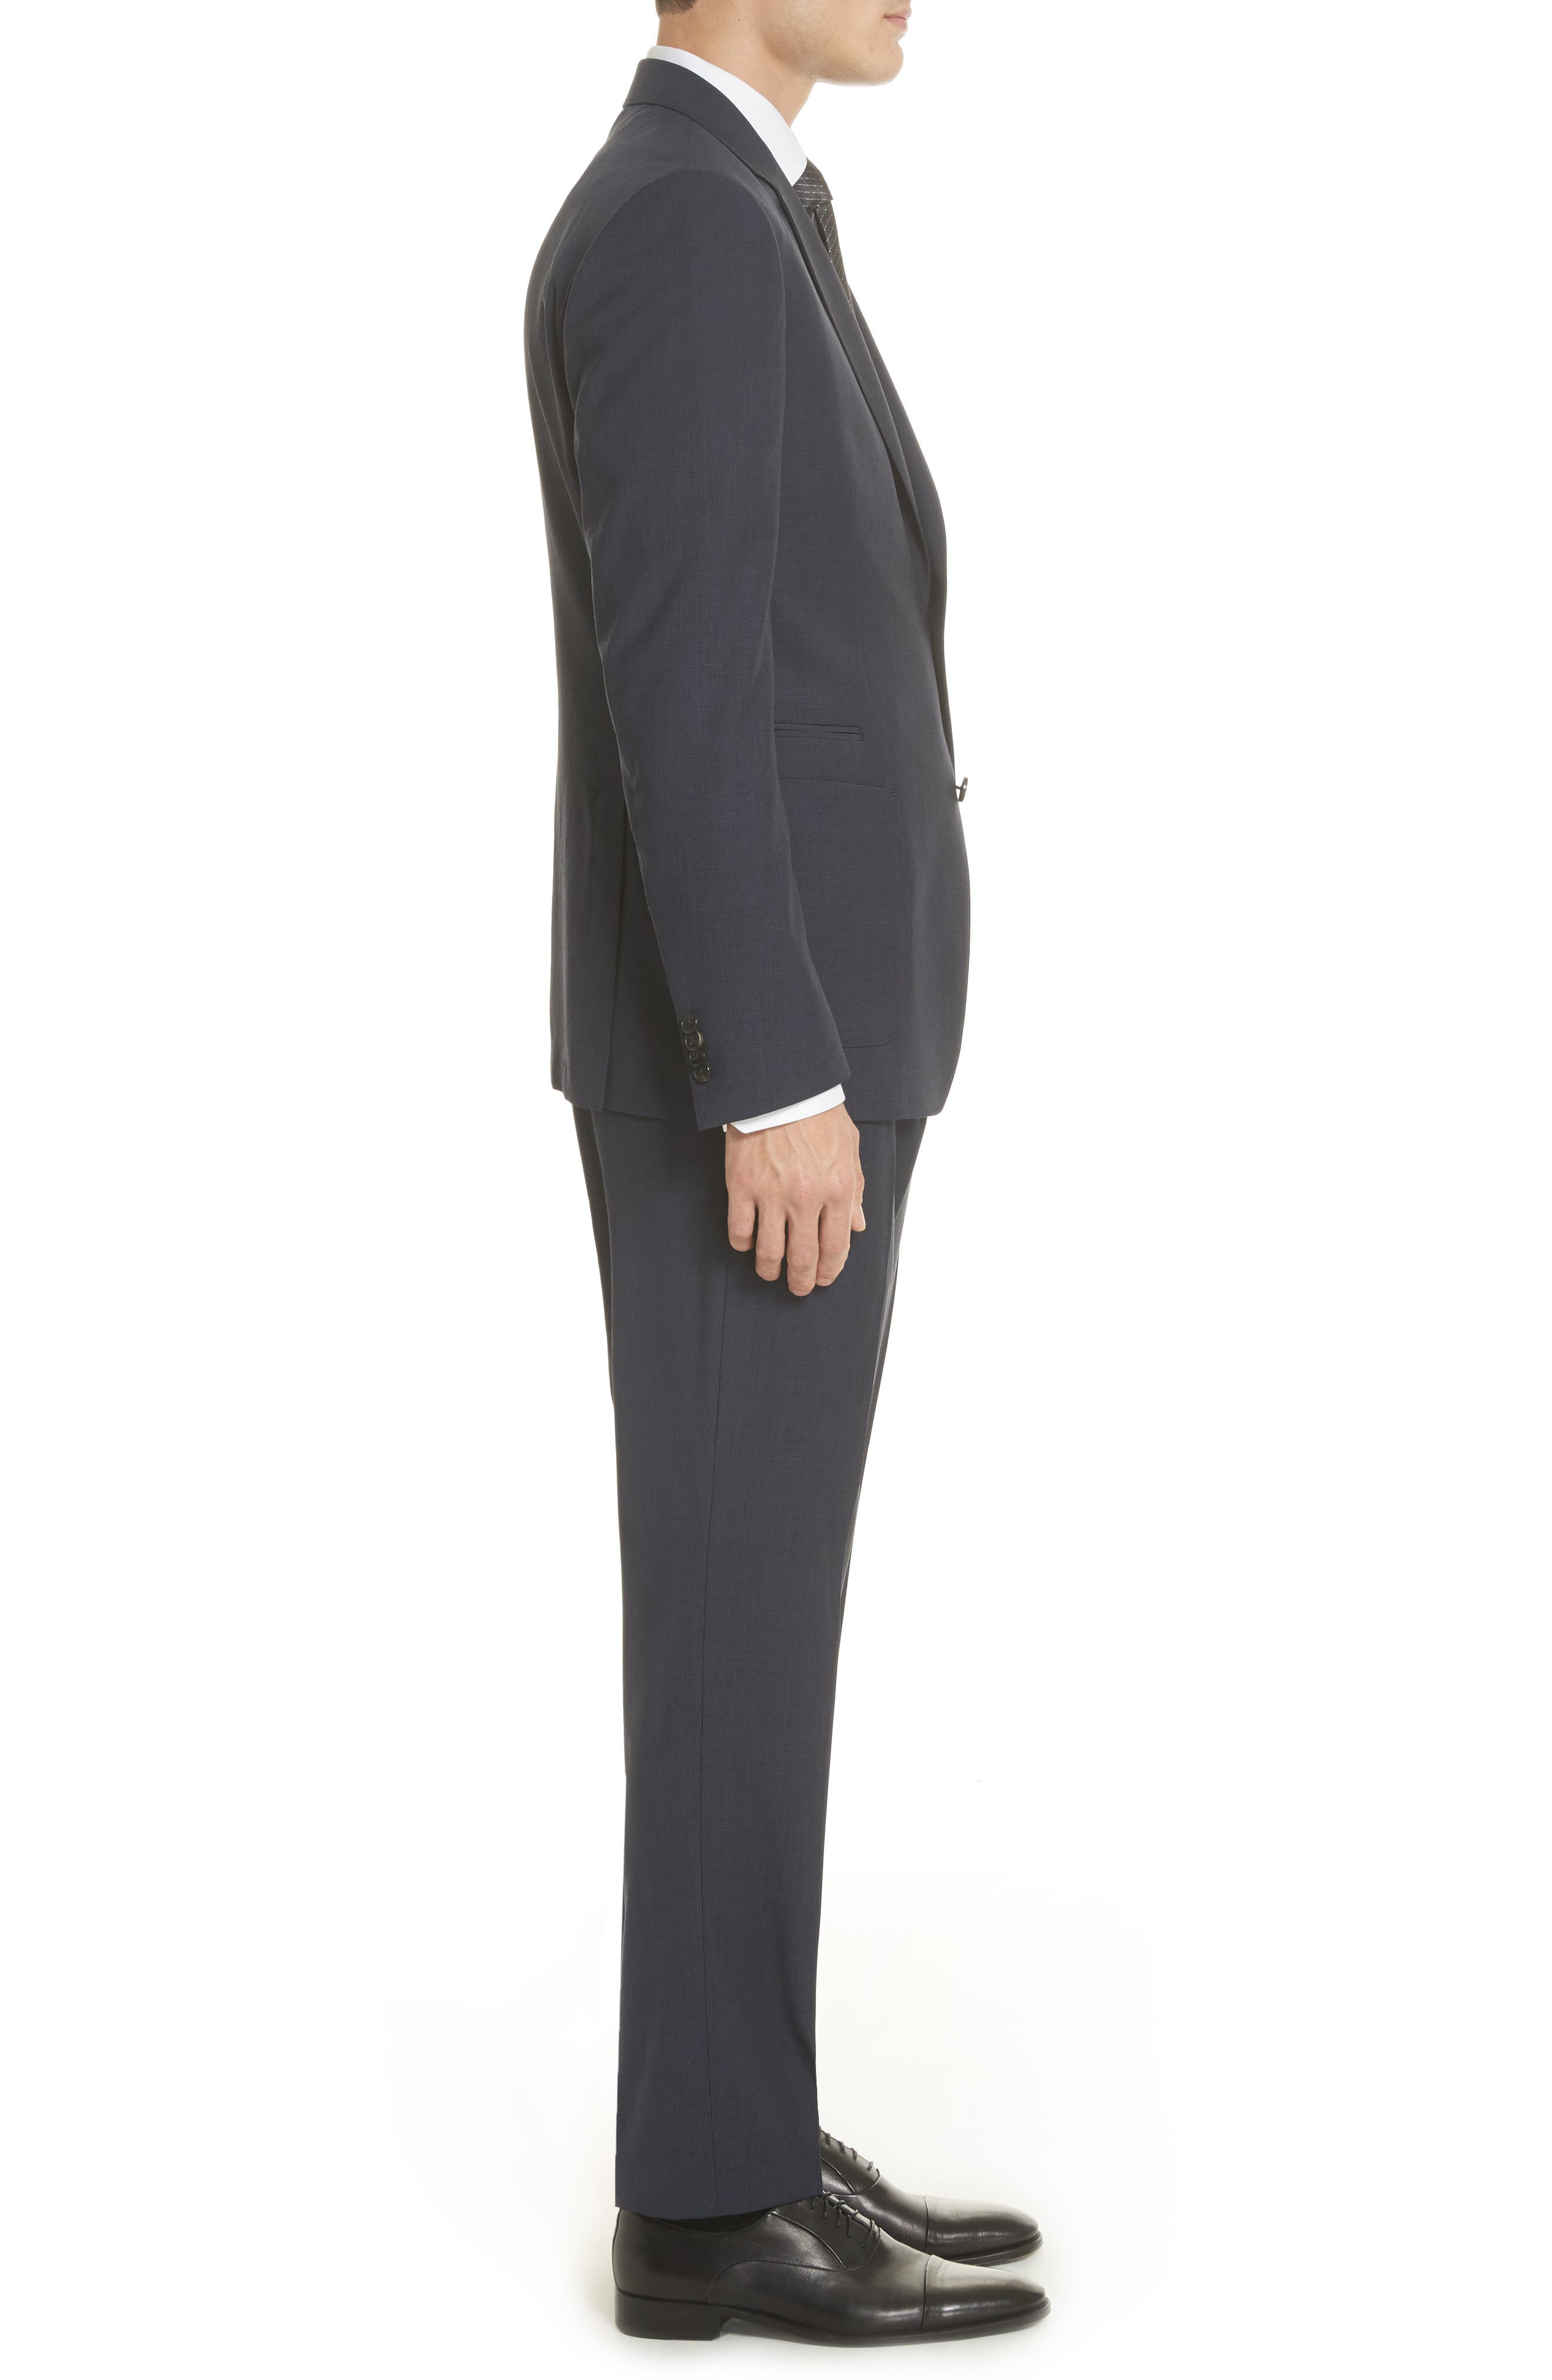 Alternate Image 3  - Z Zegna TECHMERINO™ Wash & Go Trim Fit Solid Wool Suit